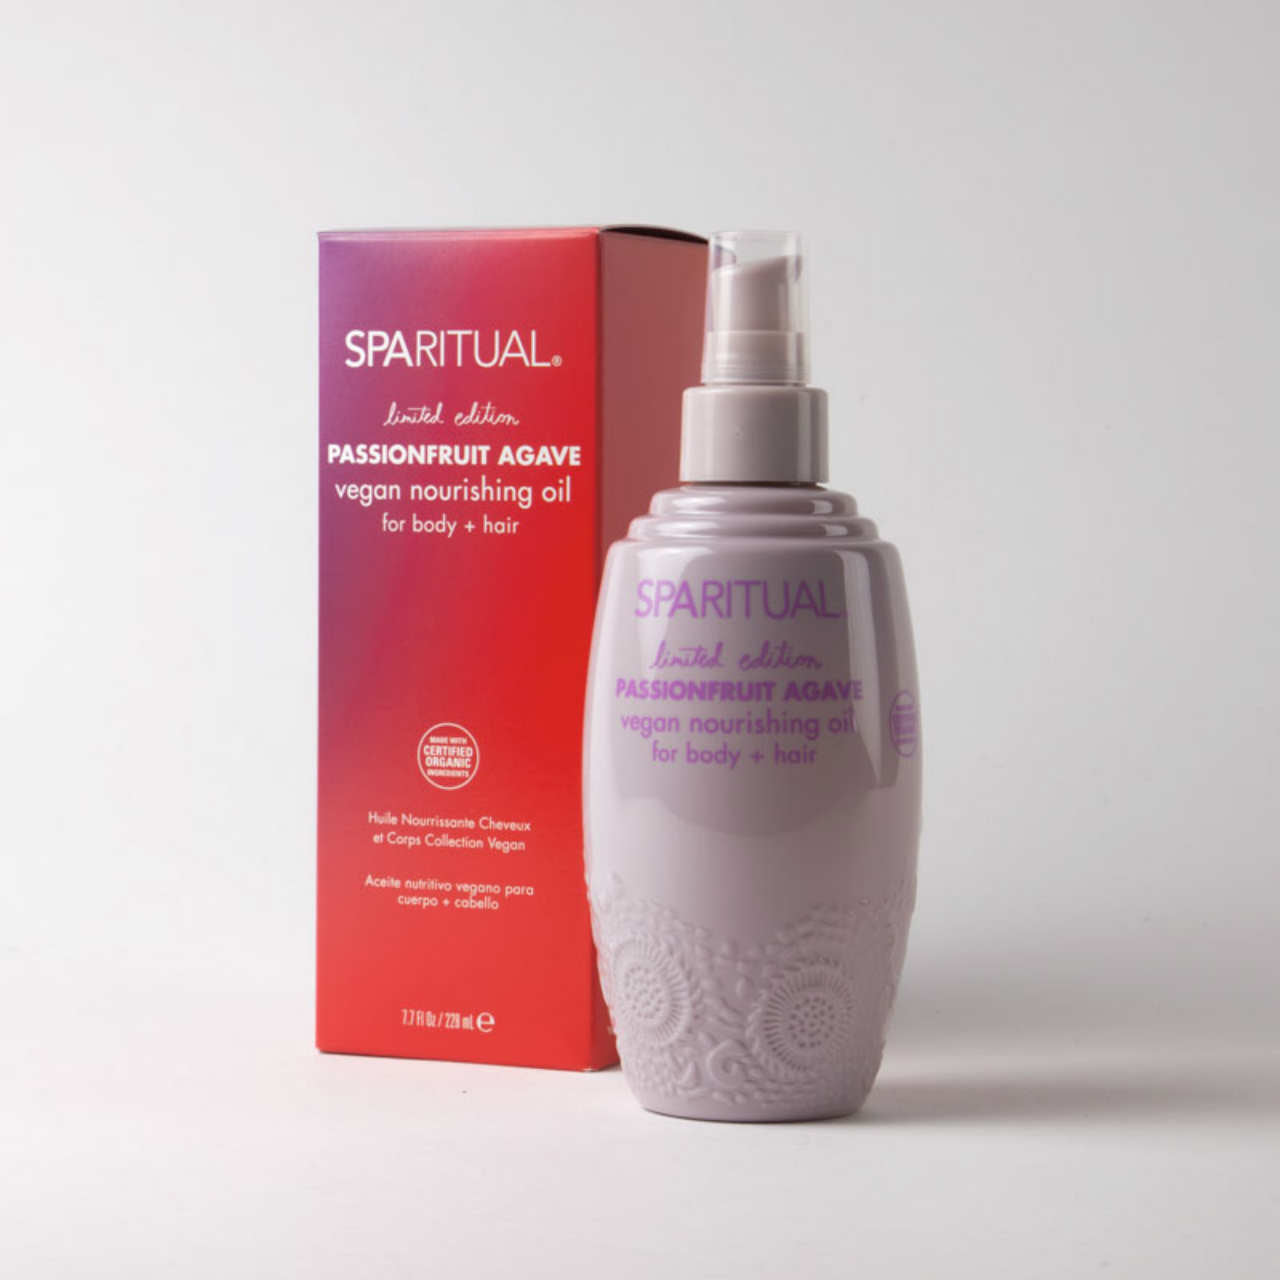 SPARITUAL Passionfruit Agave Nourishing Oil